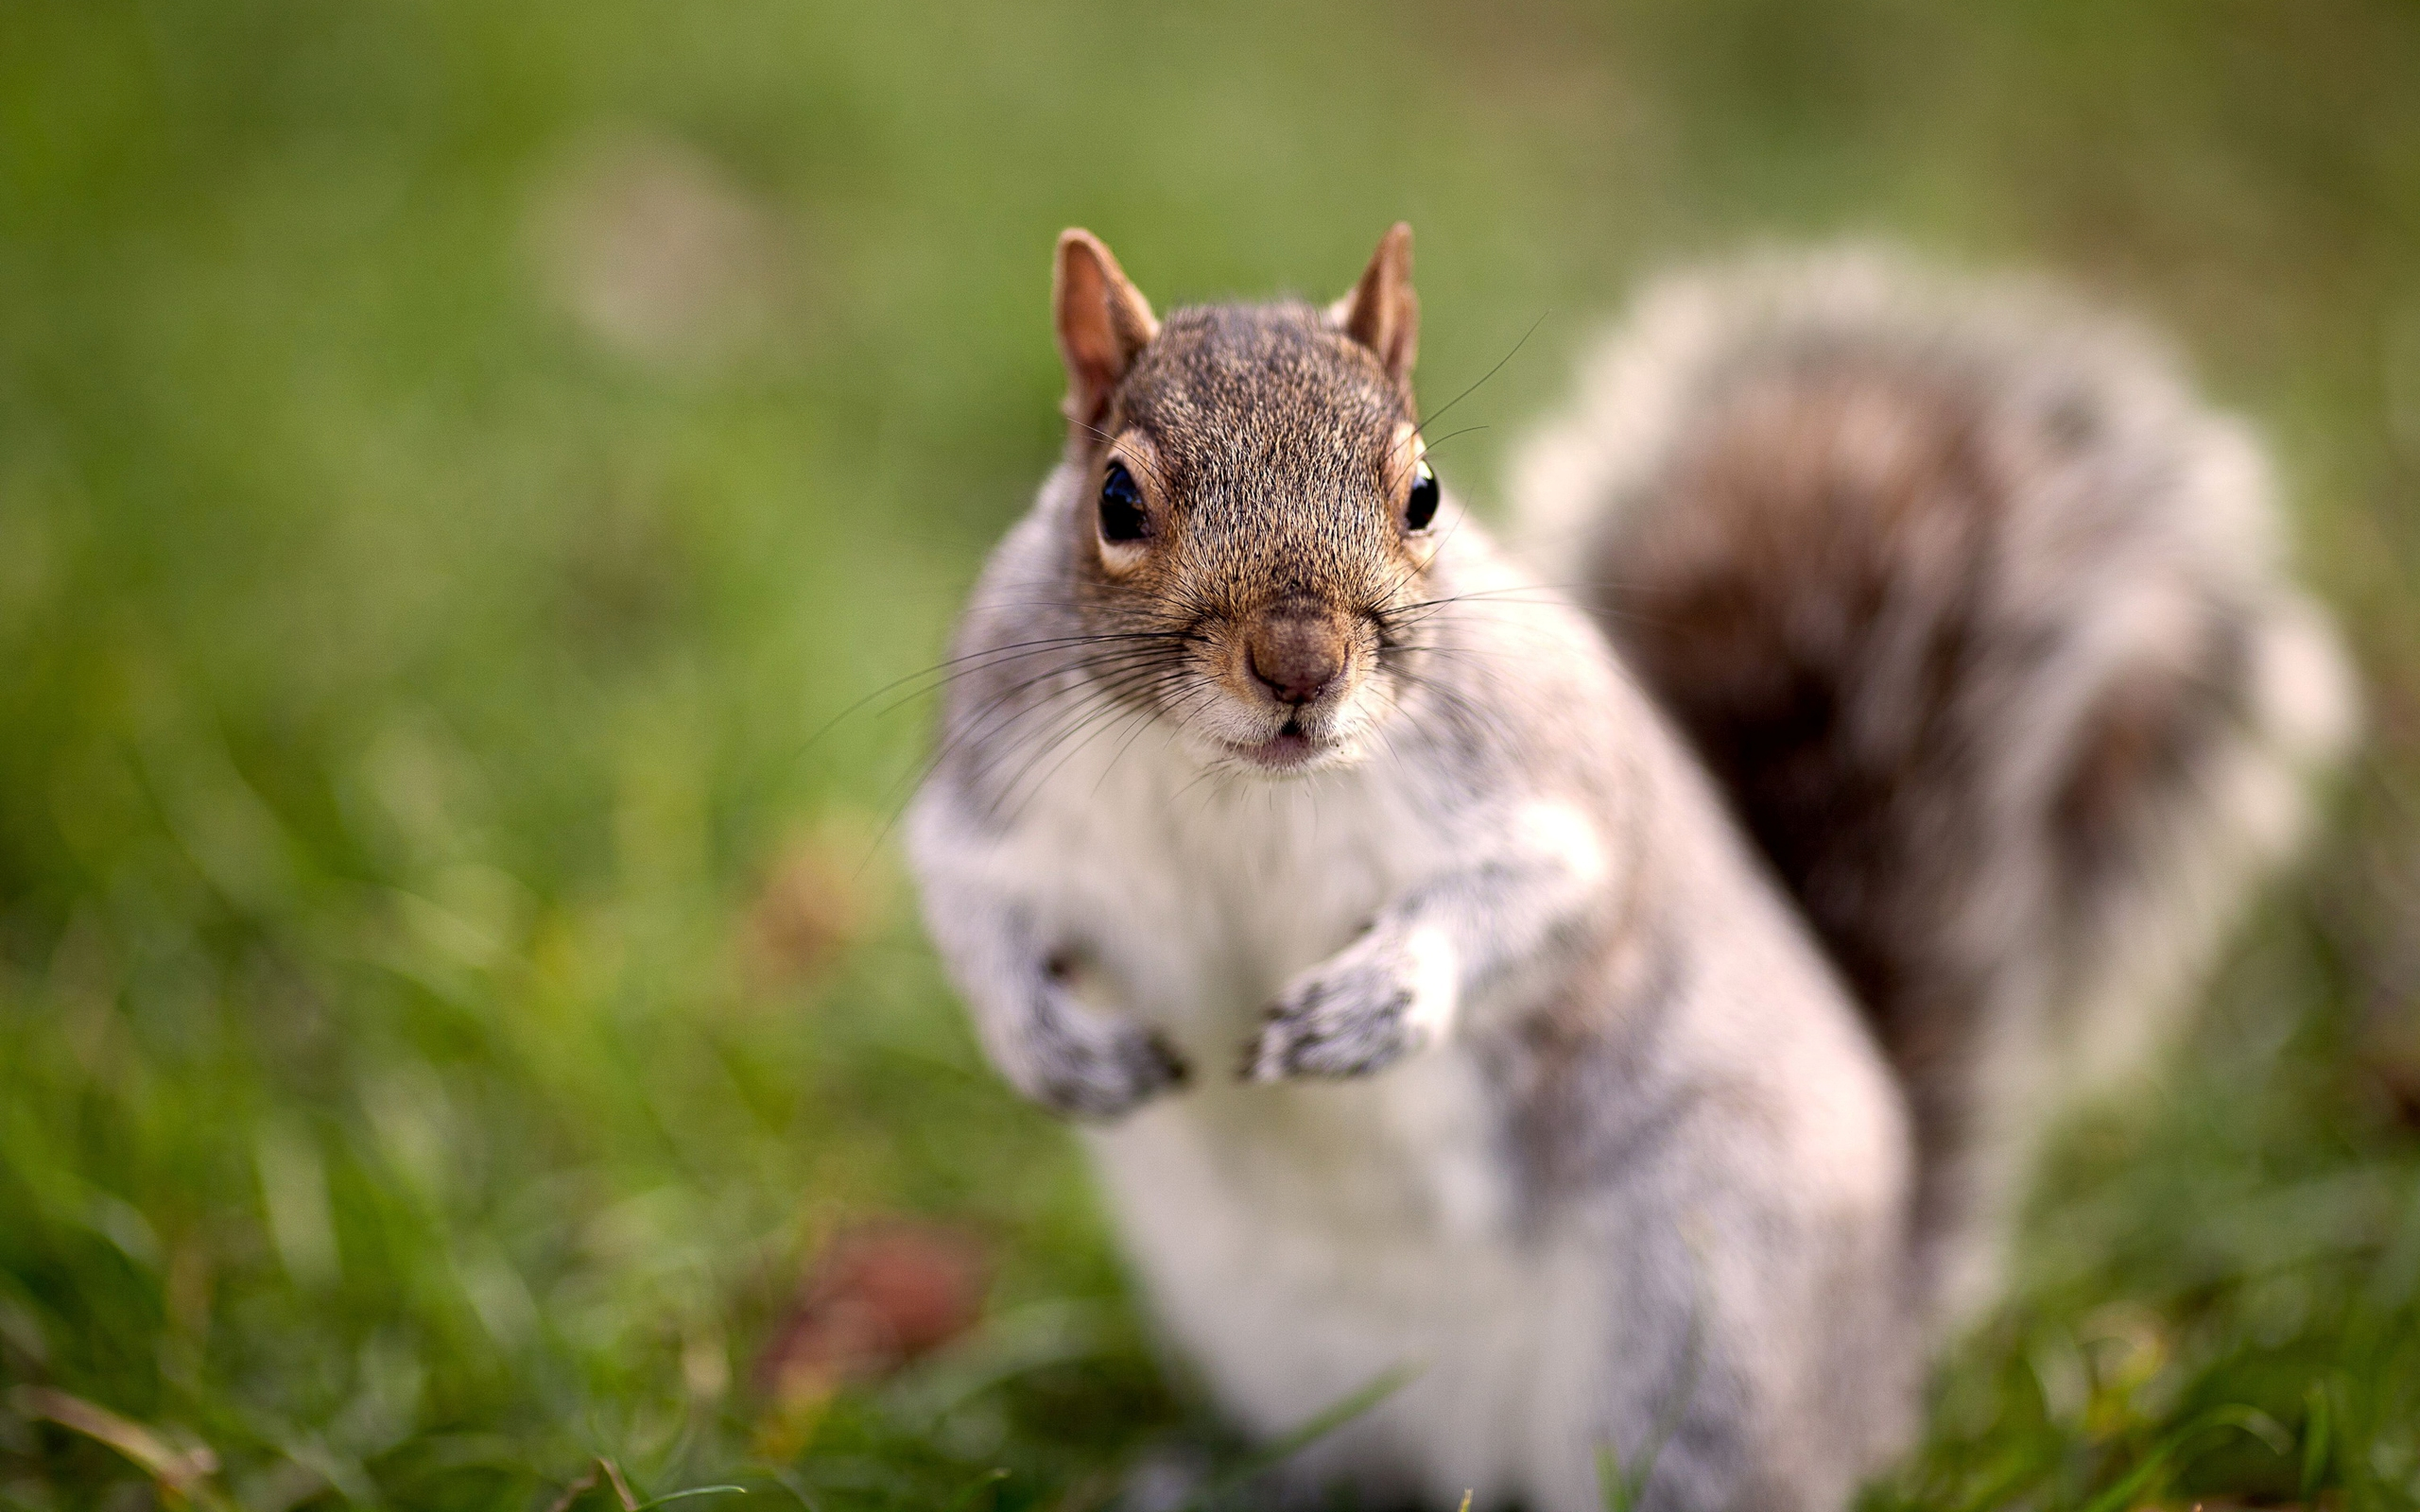 Squirrel wallpapers images photos pictures backgrounds - Funny squirrel backgrounds ...